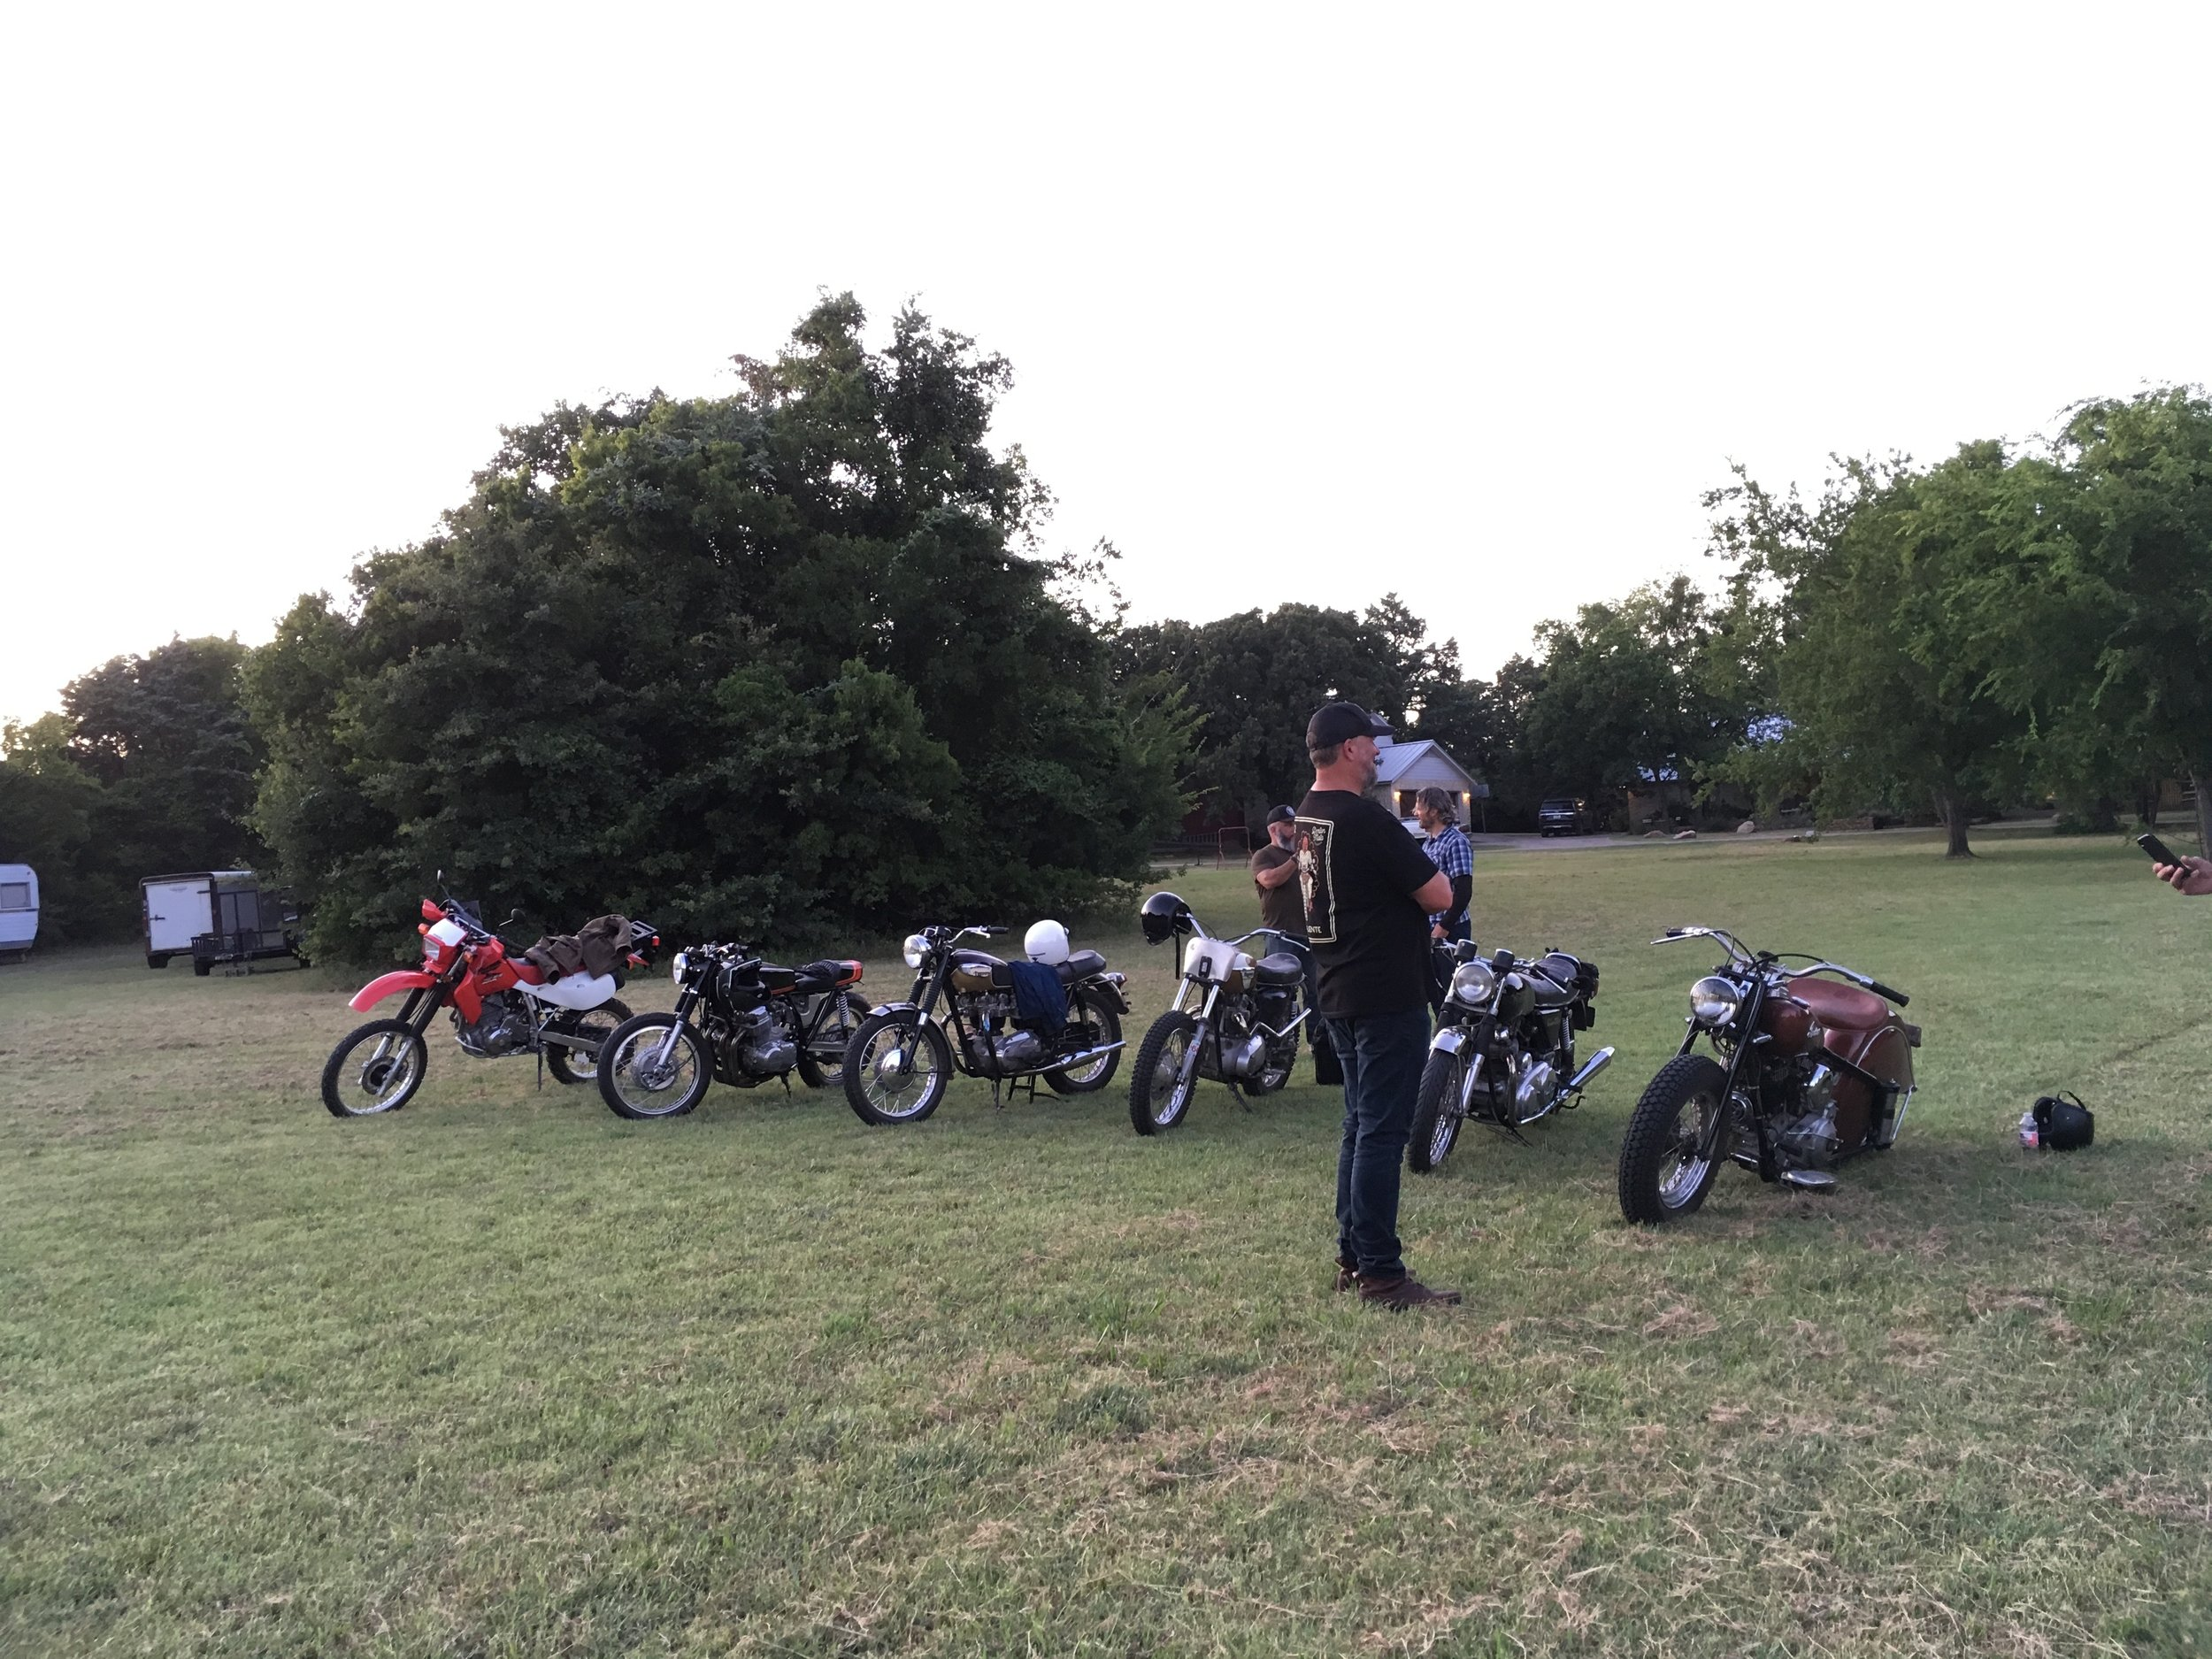 John Green surveying the bikes after our ride.